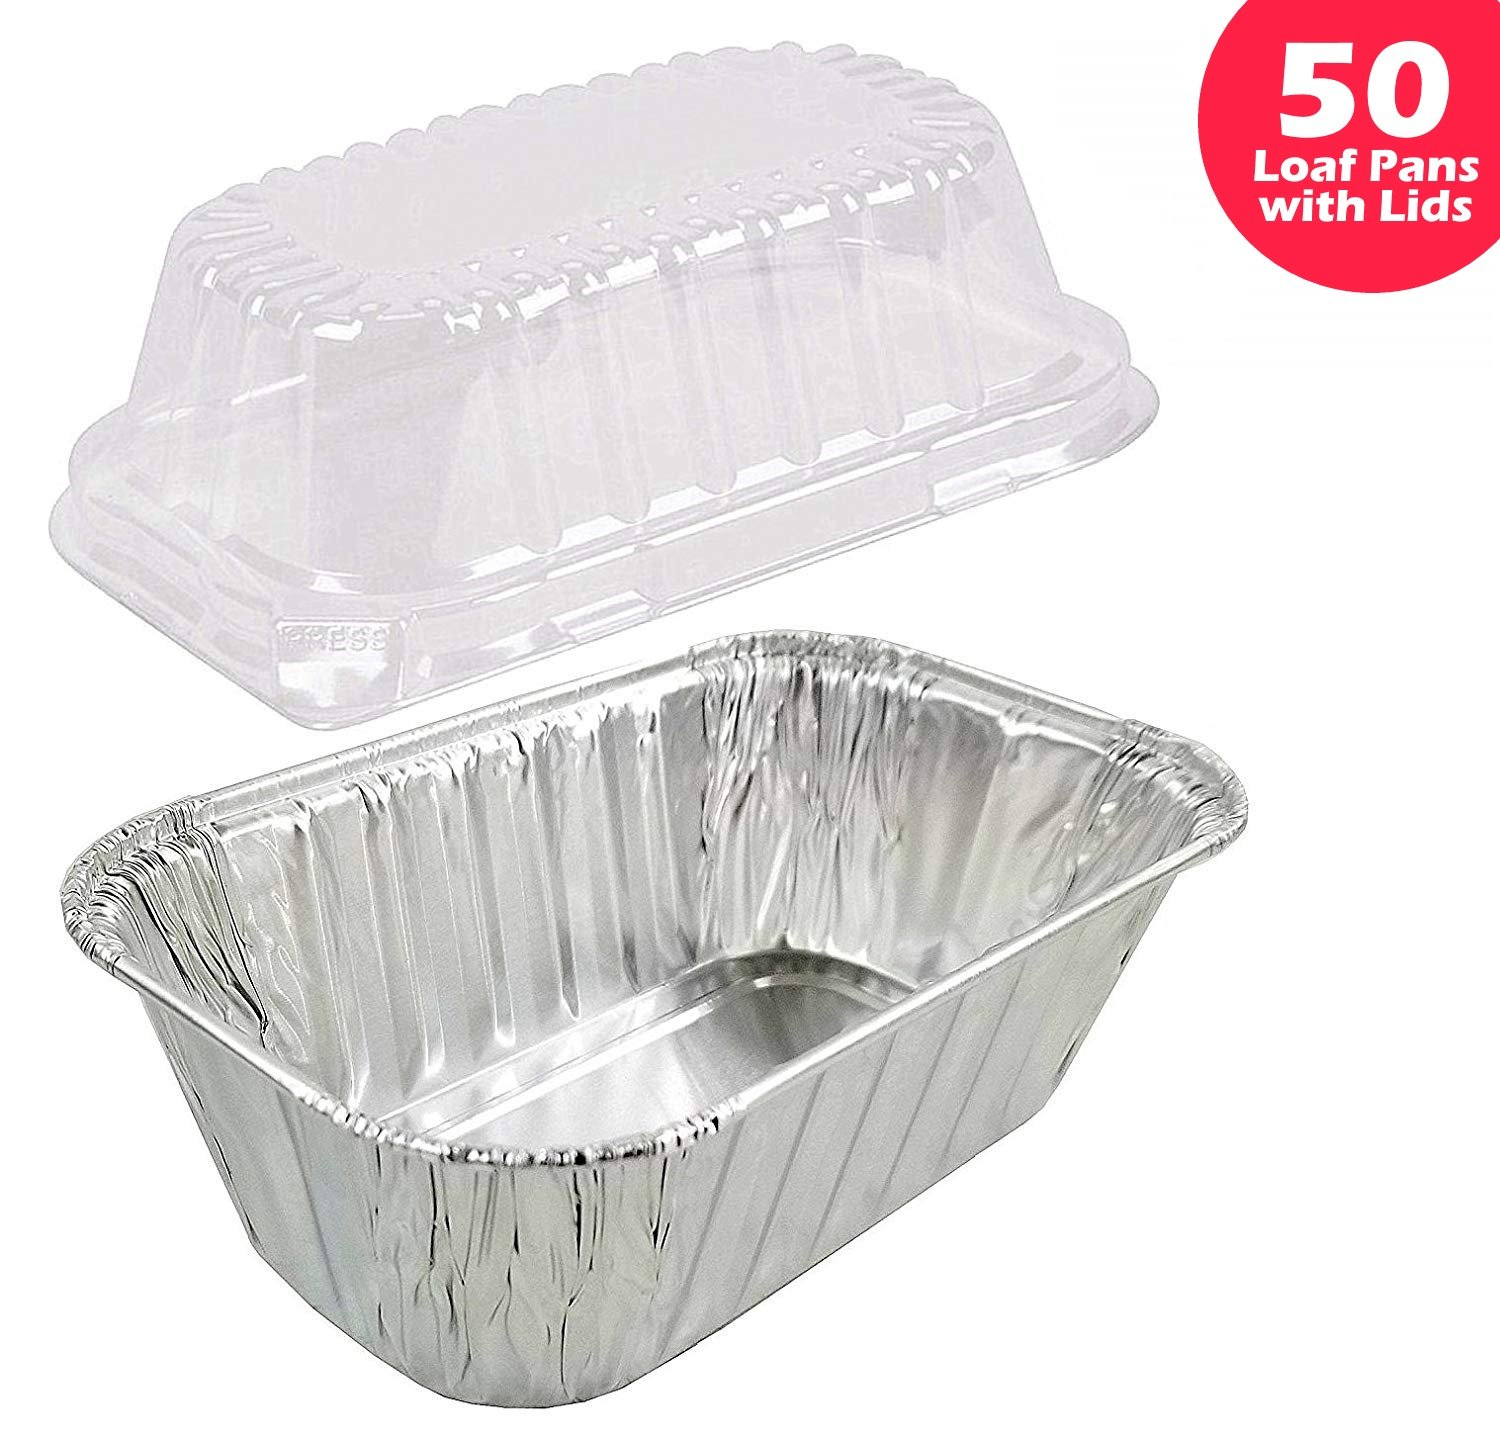 1 lb. Aluminum Foil Small Mini-Loaf Bread Pan w/Clear Dome Lid (Pack of 50 Sets) by Durable Packaging